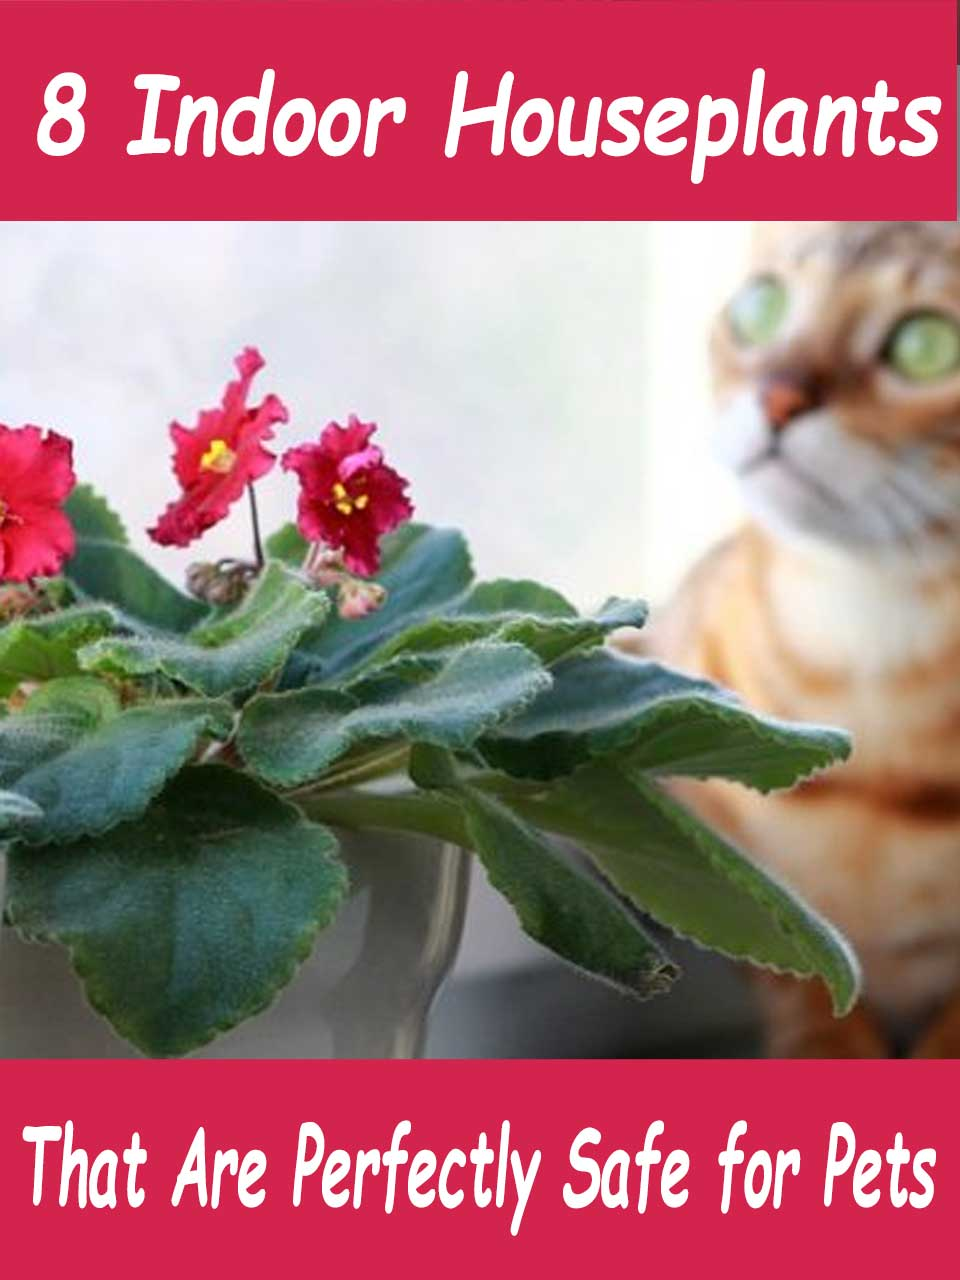 pet safe indoor houseplants